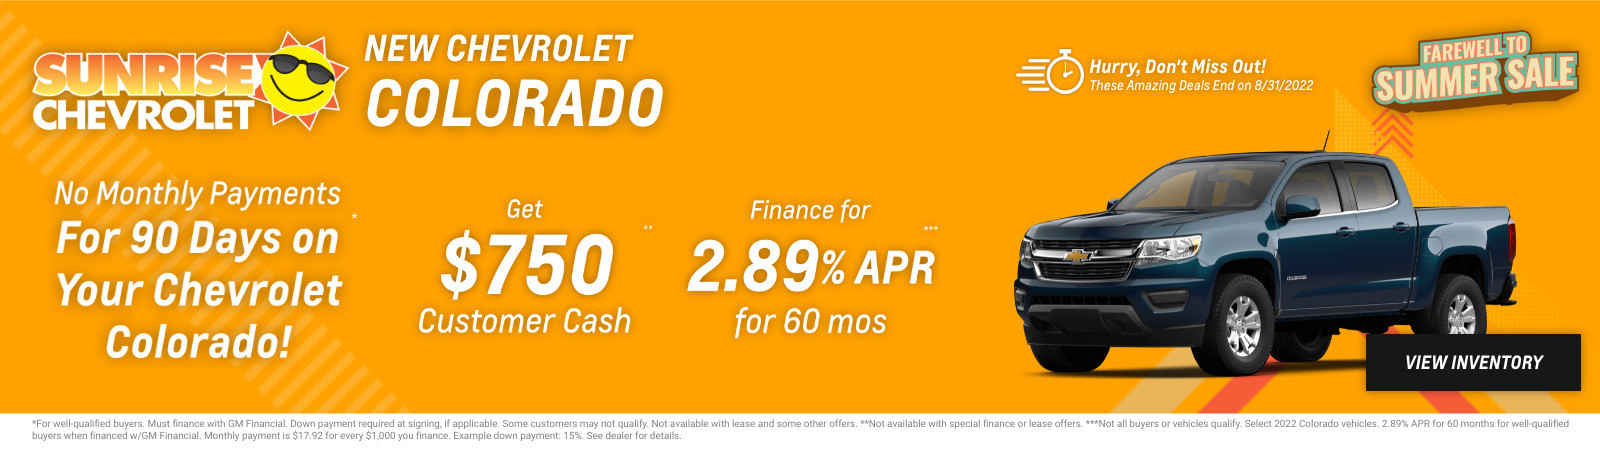 New Chevrolet Colorado Current Deals and Offers in Chicago, IL